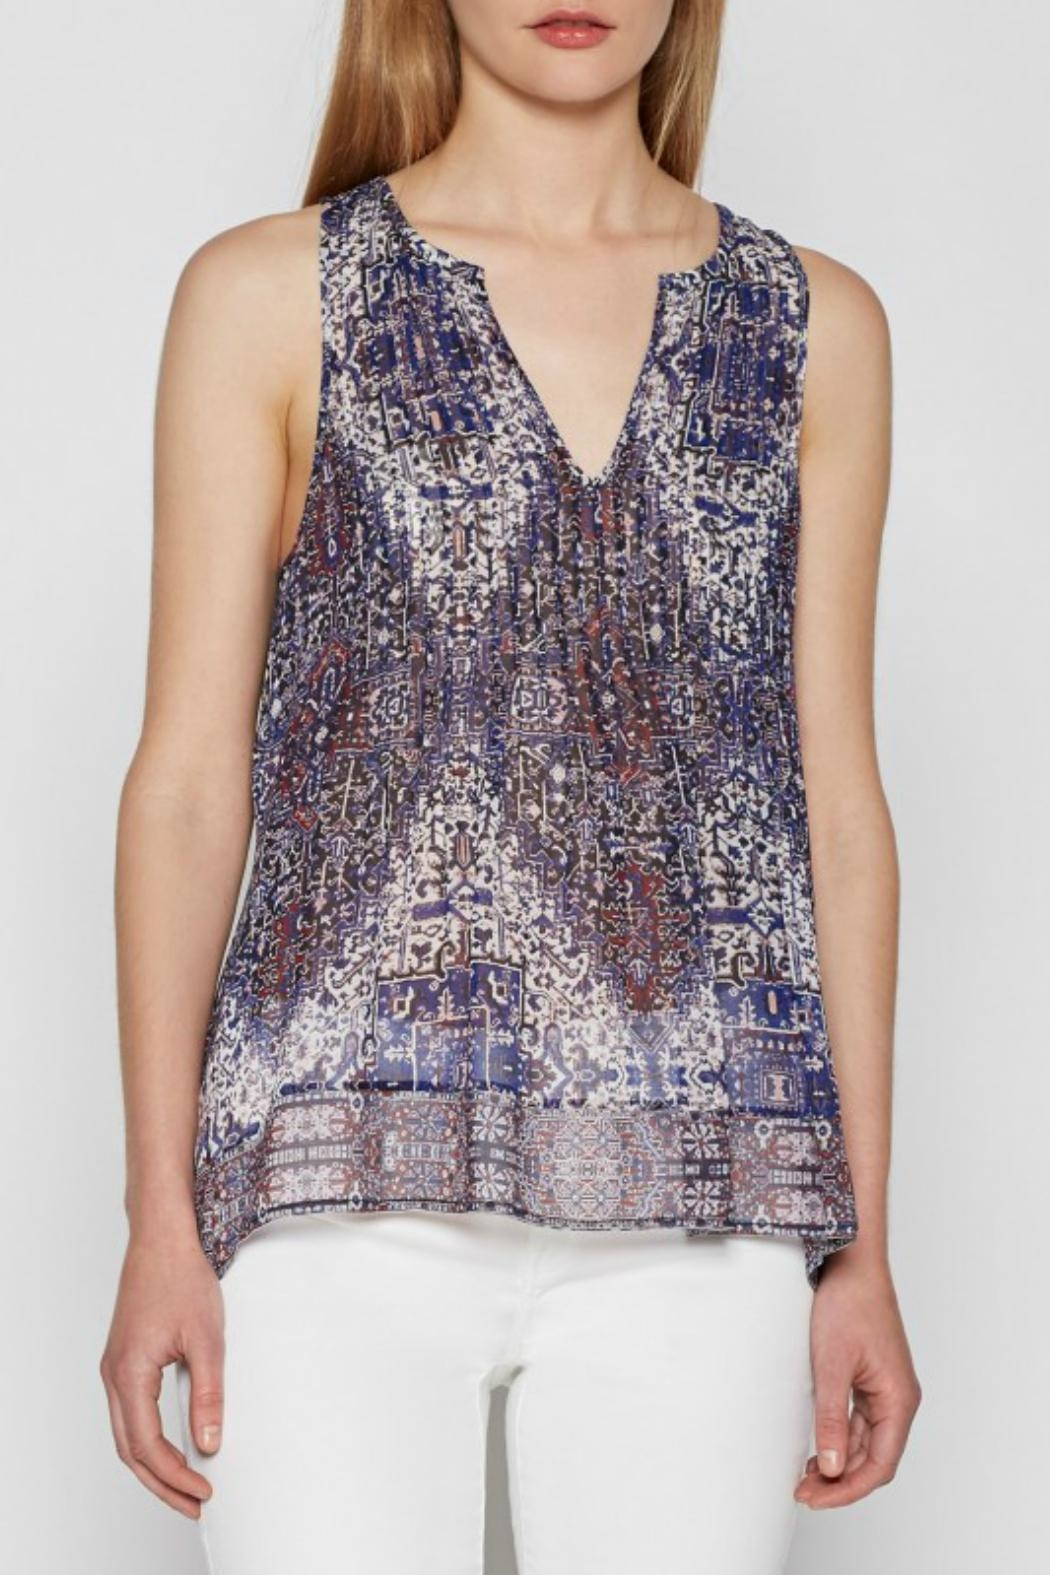 Joie Gretel B Tank Top - Front Cropped Image